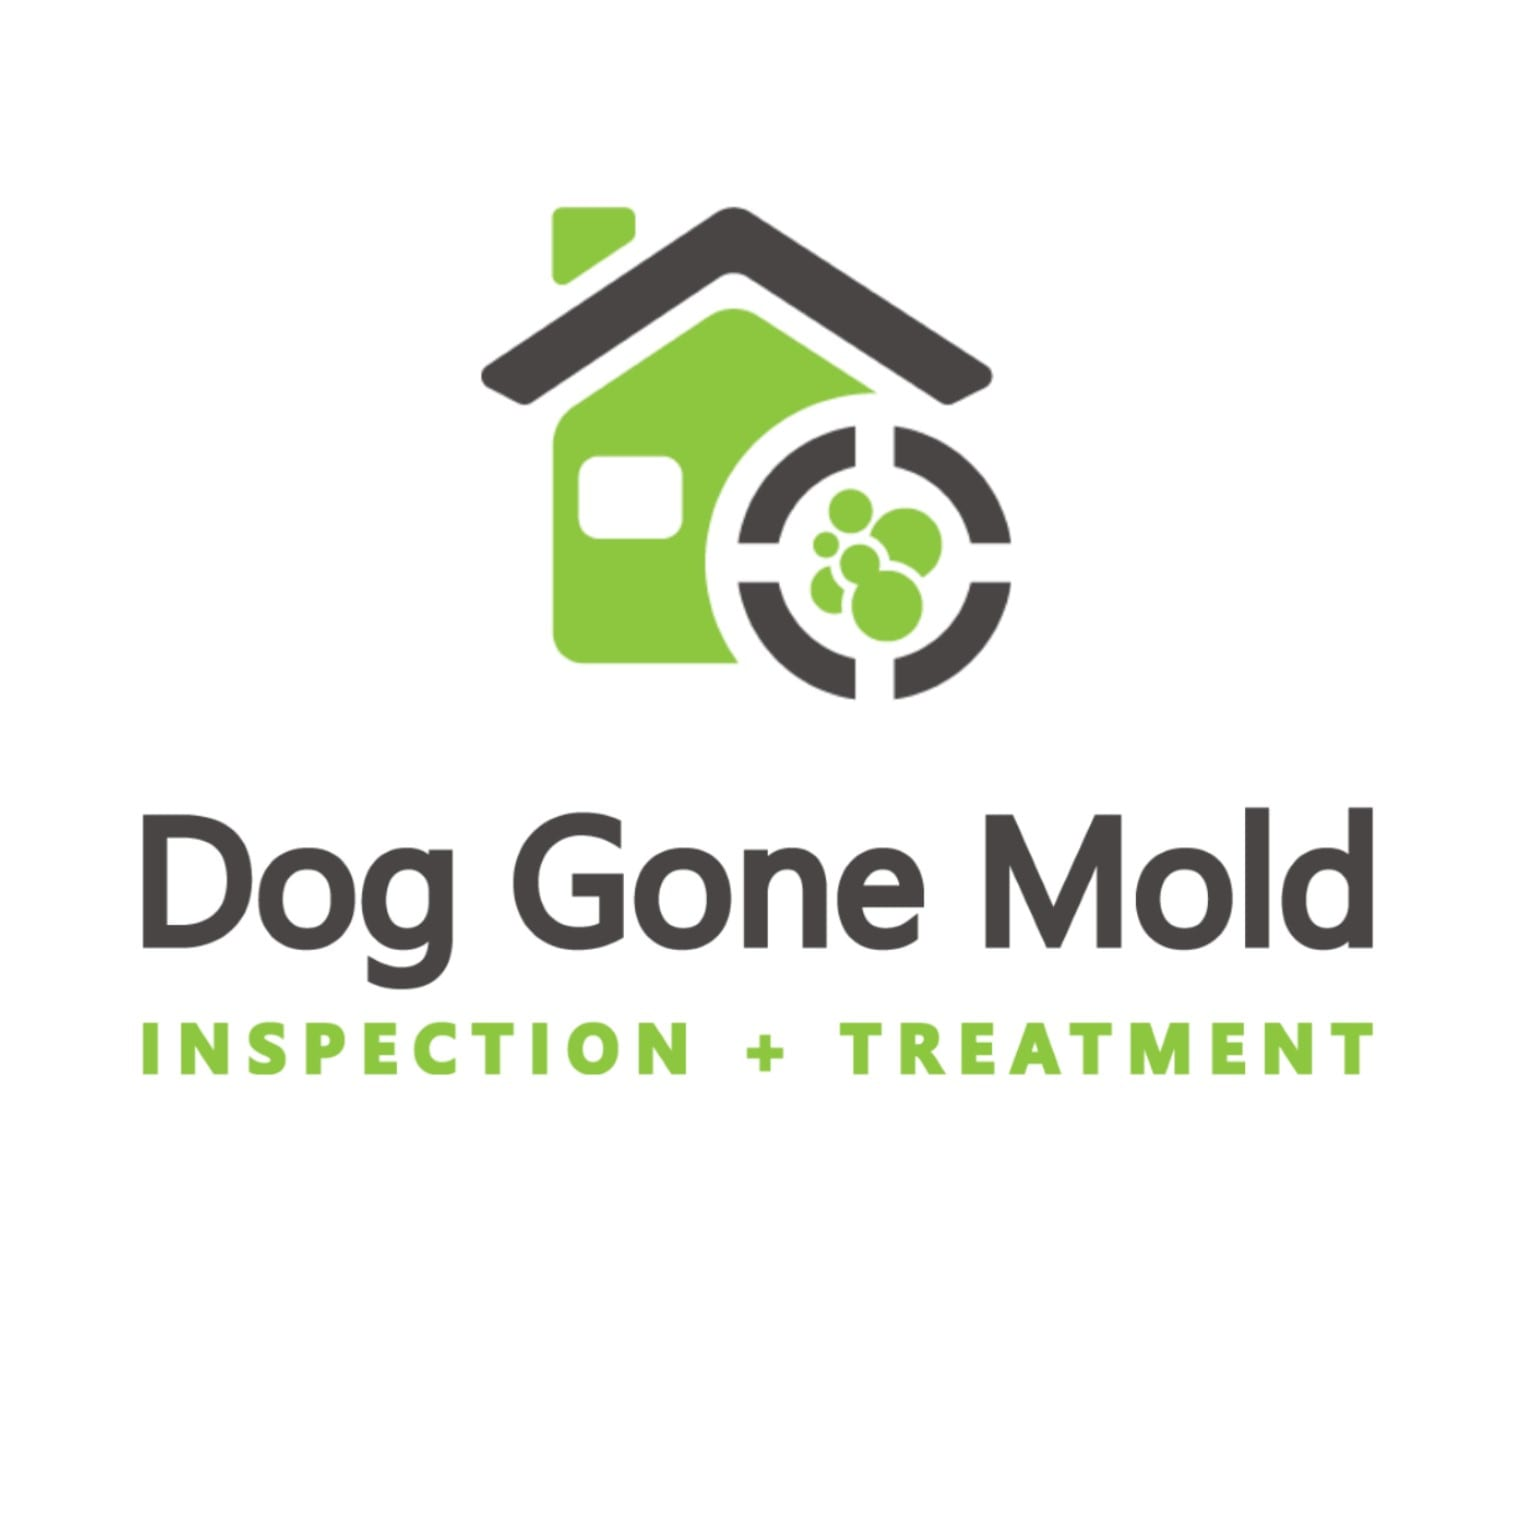 Calibrate Digital Marketing Client - Dog Gone Mold